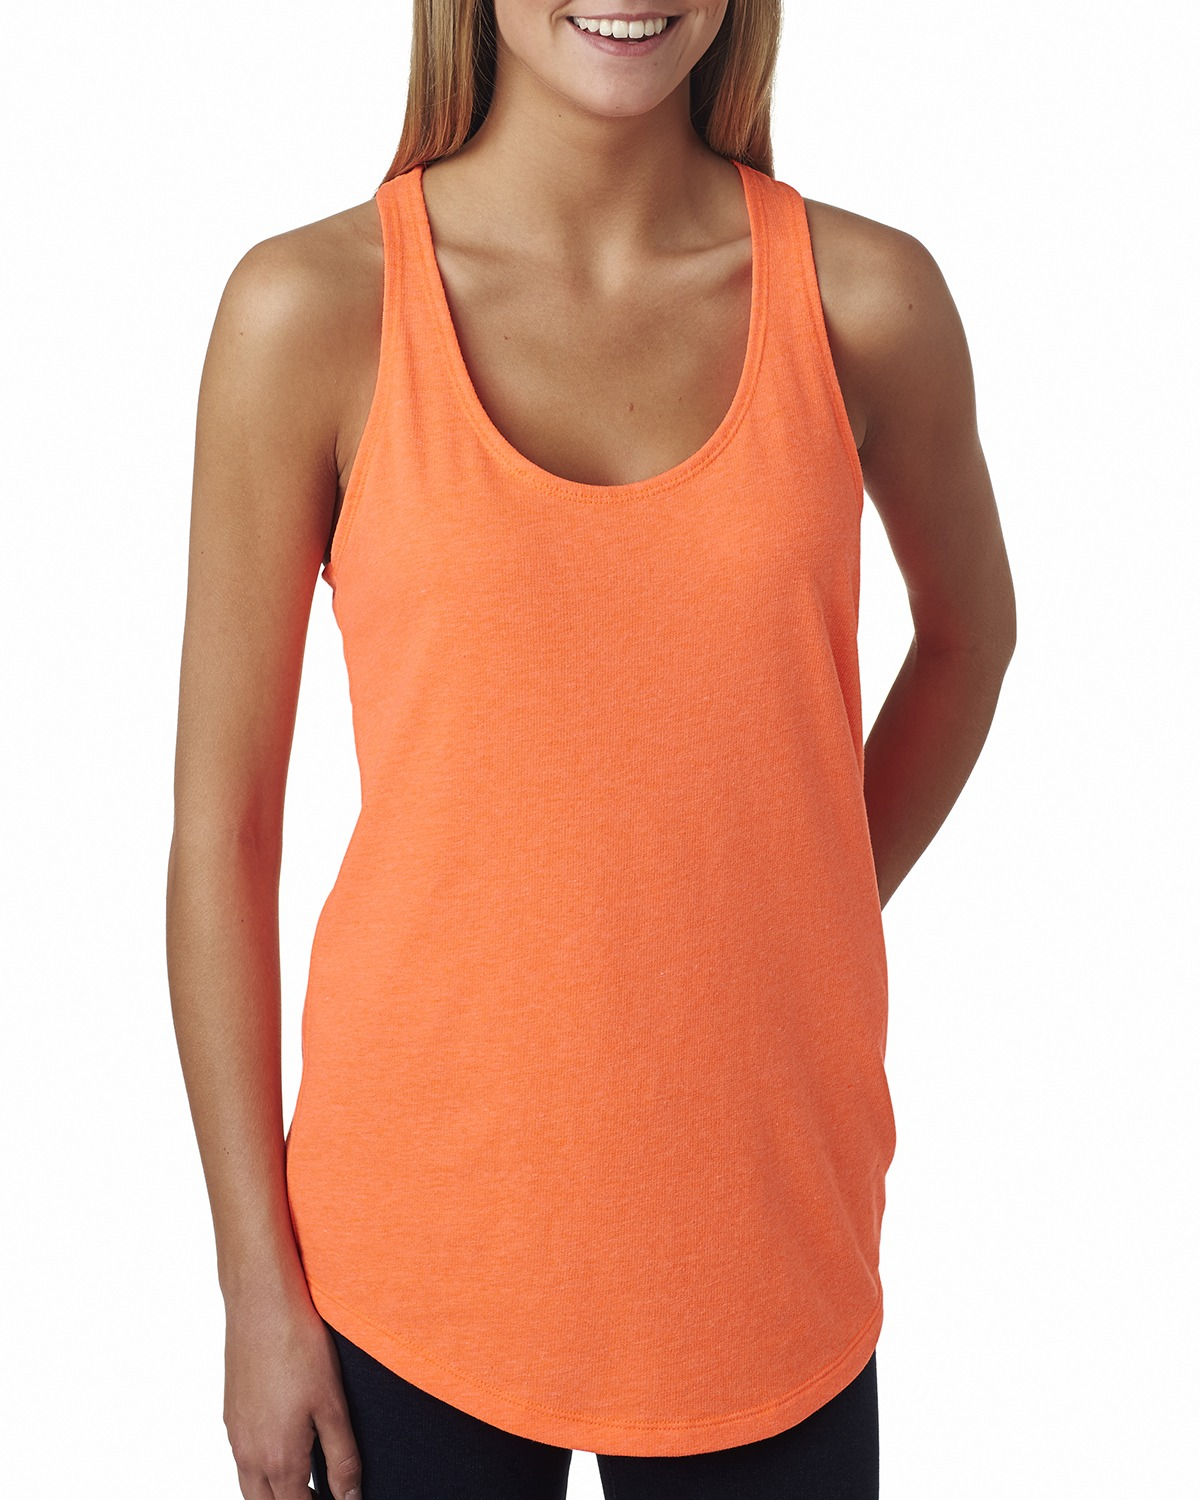 click to view Neon Heather Orange